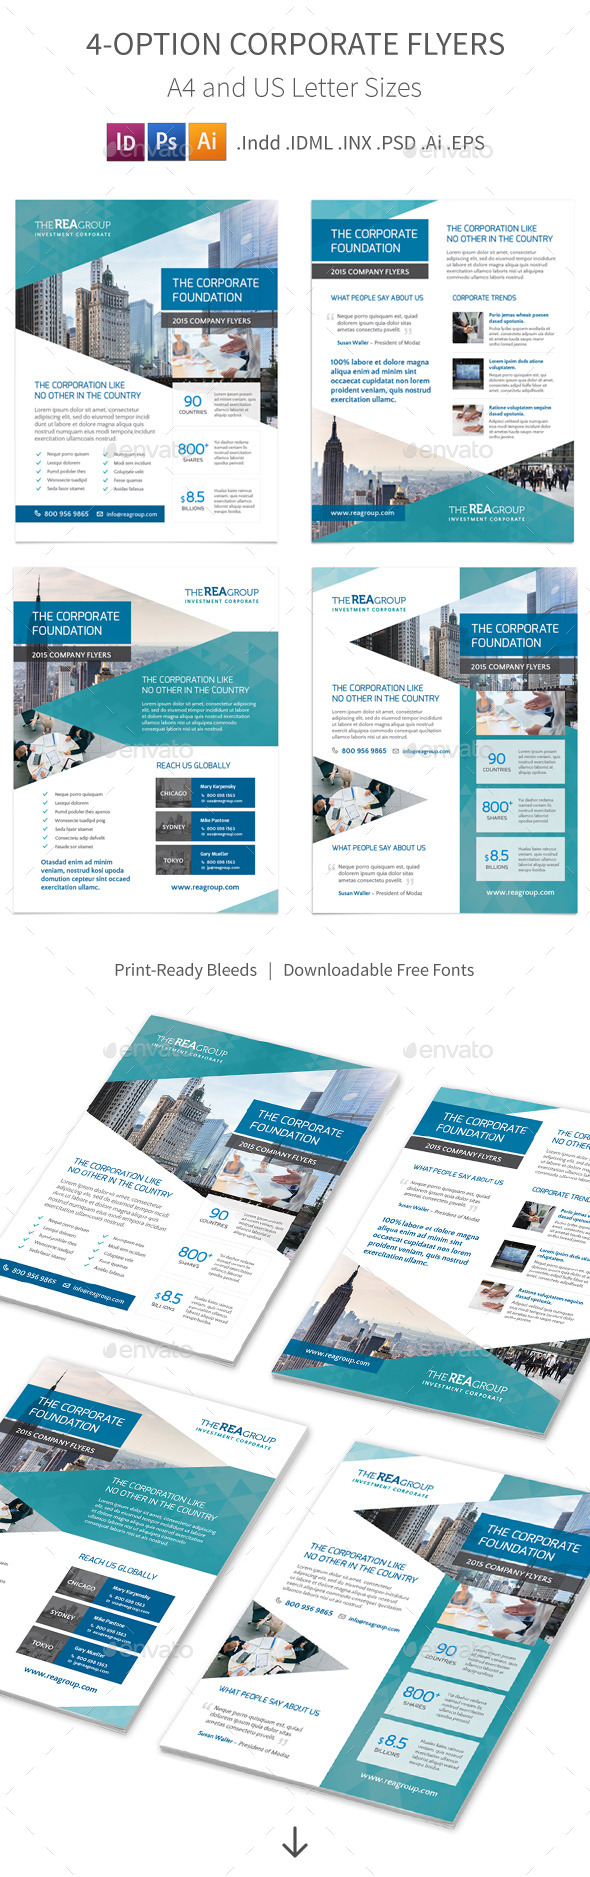 GraphicRiver Corporate Flyers 4 Options 11095660